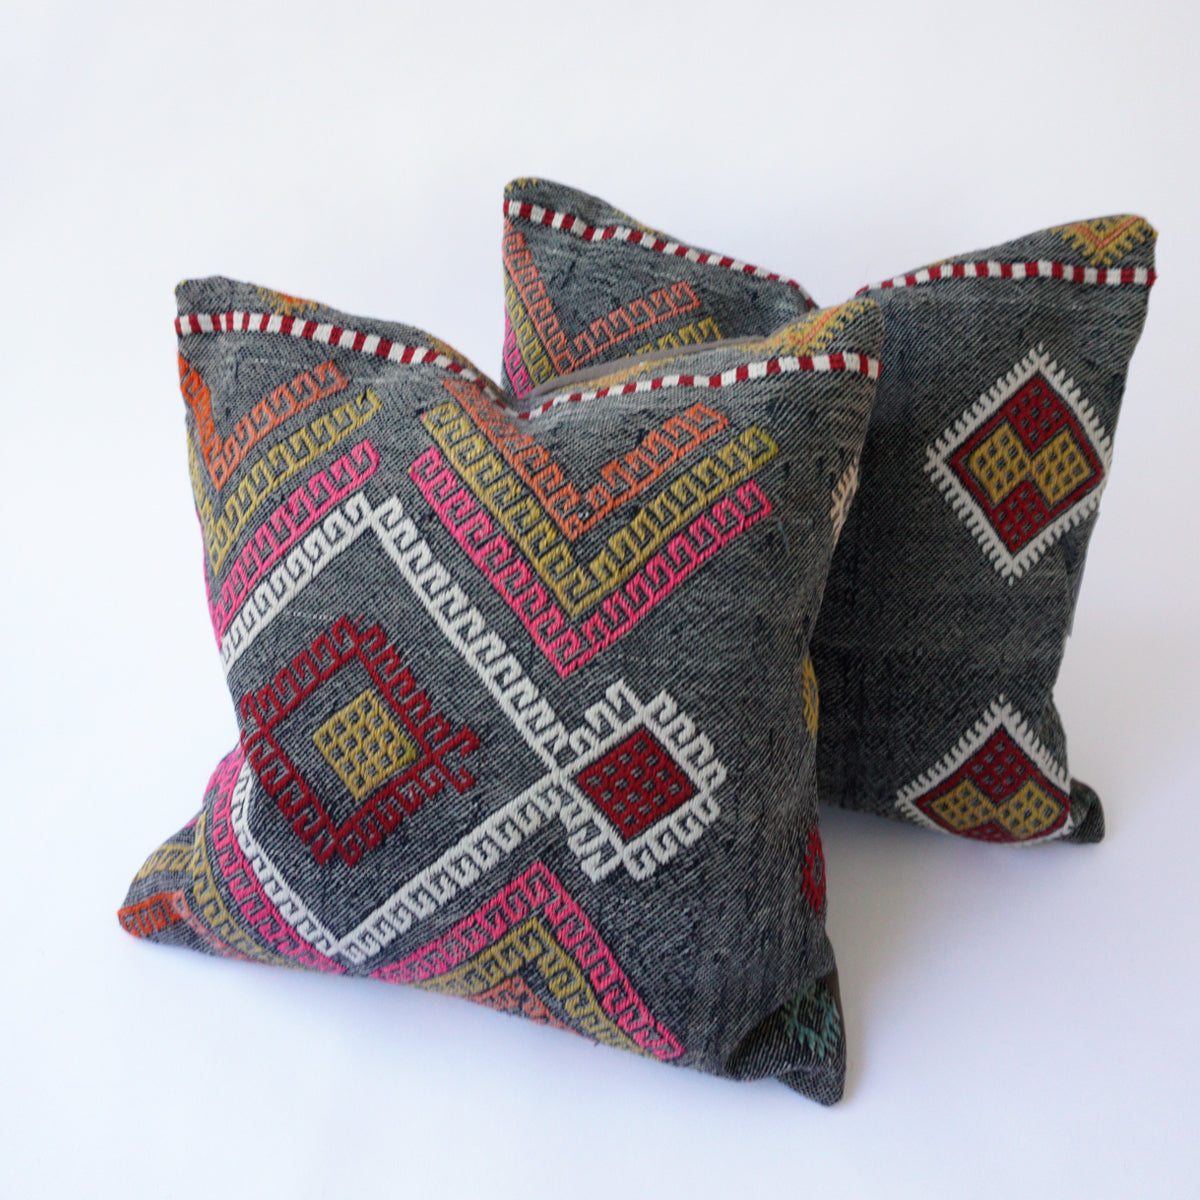 This pair of 16x16 Kilim pillowcases are cut from the same rug and made from recycled handwoven vintage Turkish kilims.  Zipper closure. Insert not included. Natural dyes. Wool.   Background color is a demin blue.  Other colors include red, white, pink, green and orange.